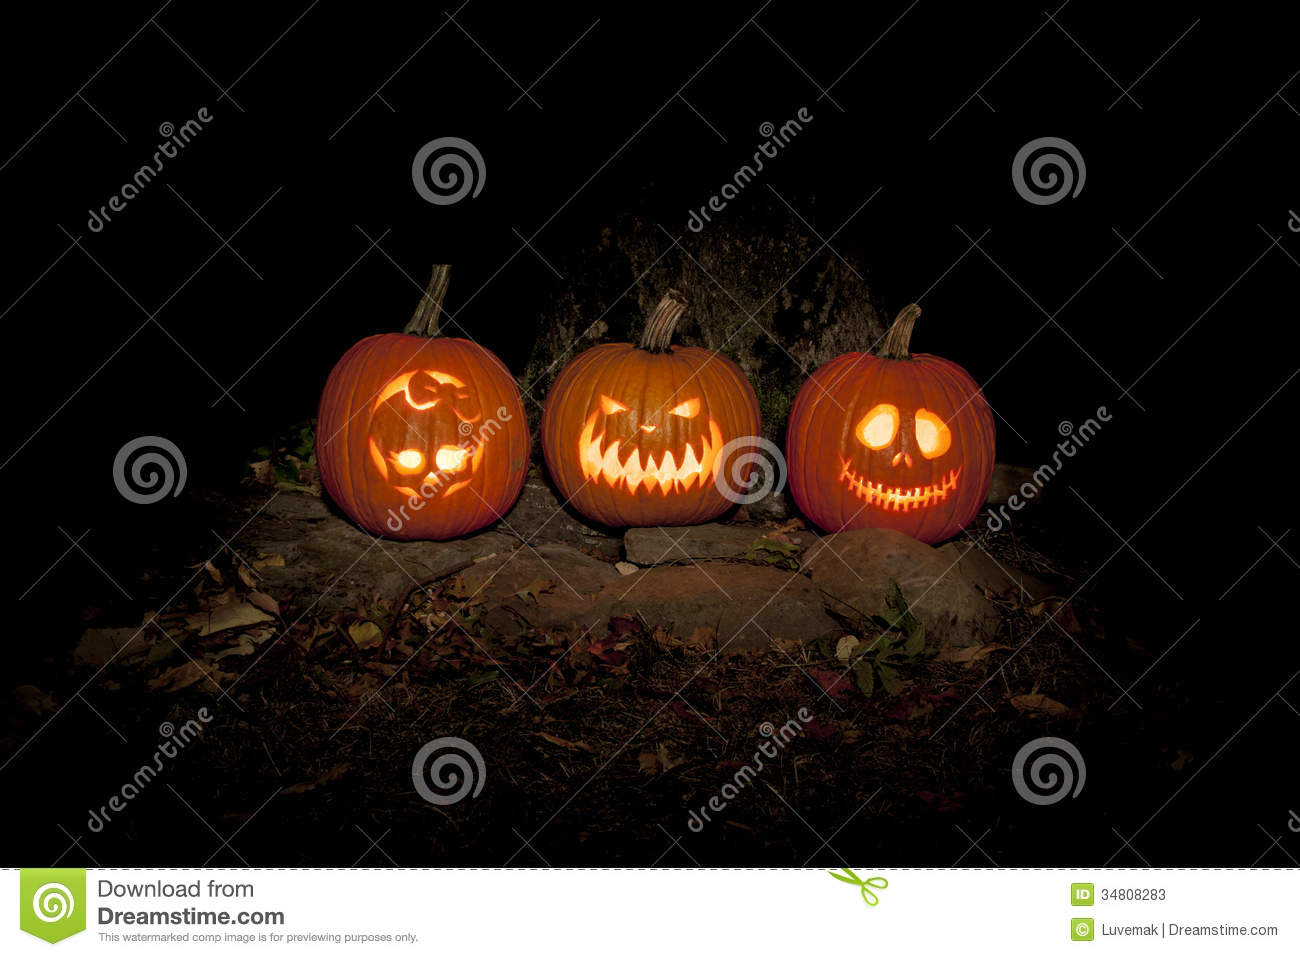 Spooky Jack O Lanterns Outdoors